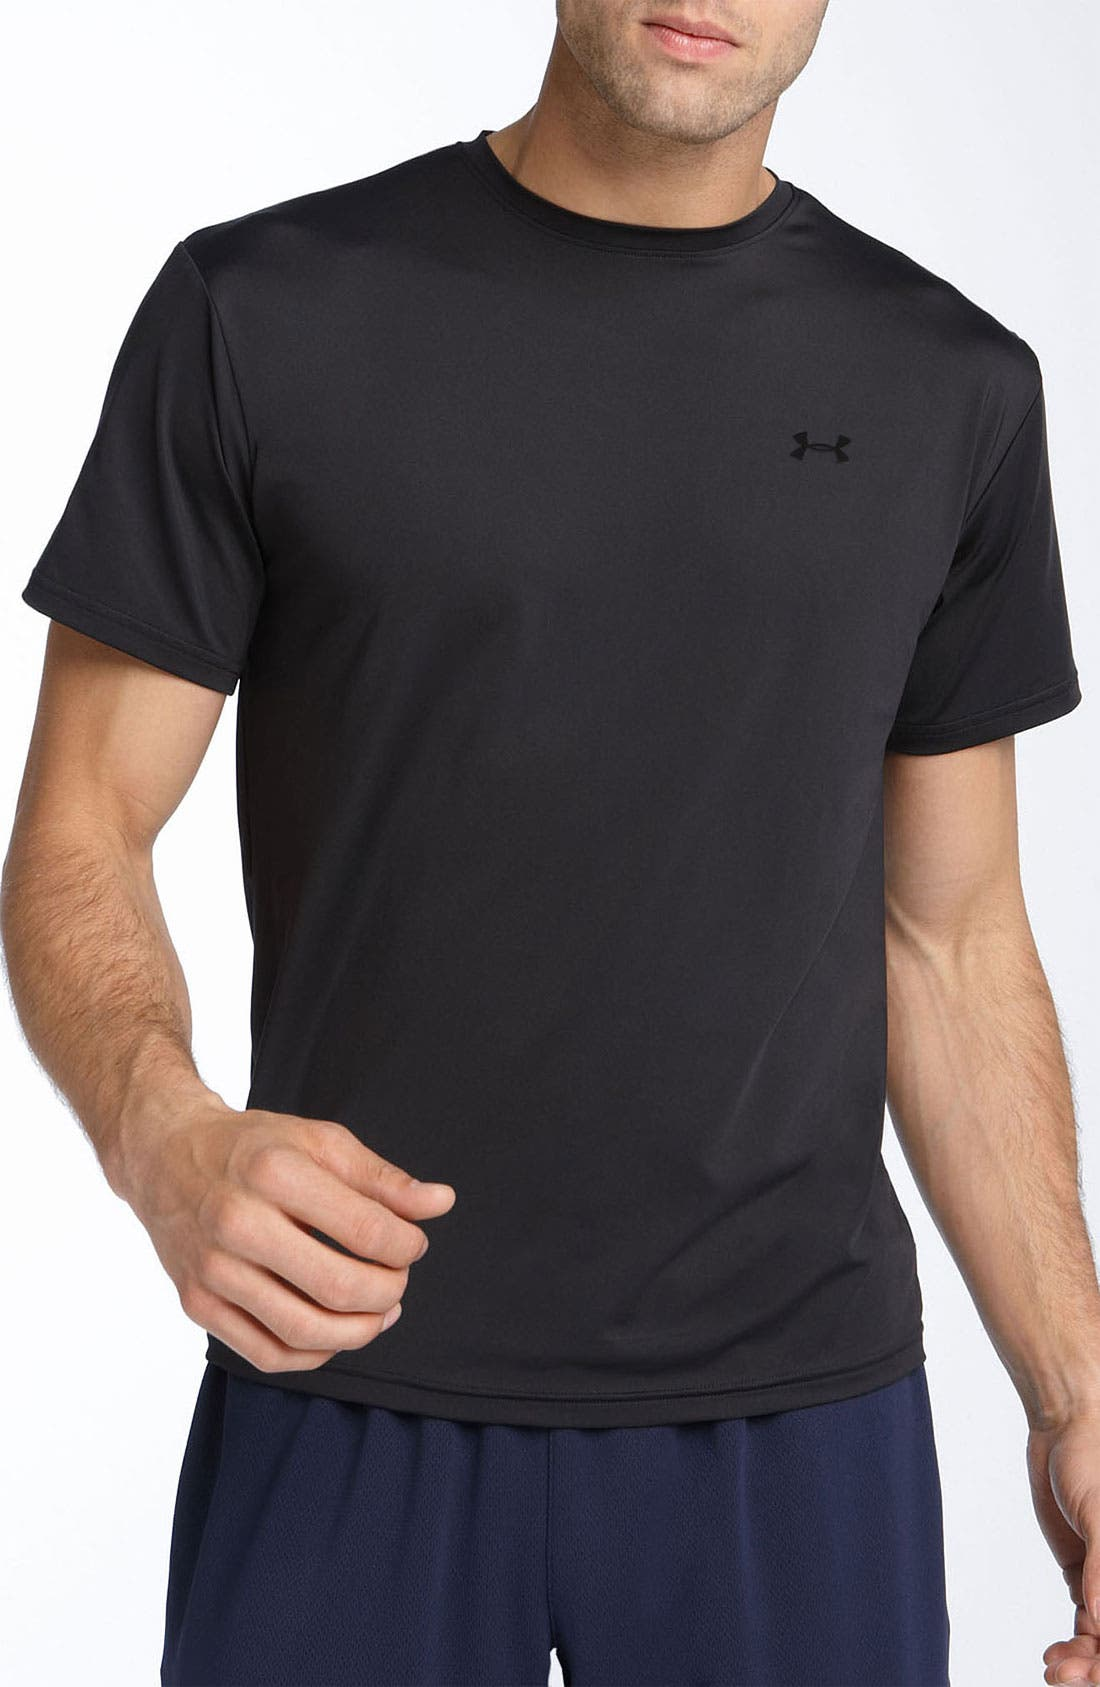 Alternate Image 1 Selected - Under Armour 'O Series' T-Shirt